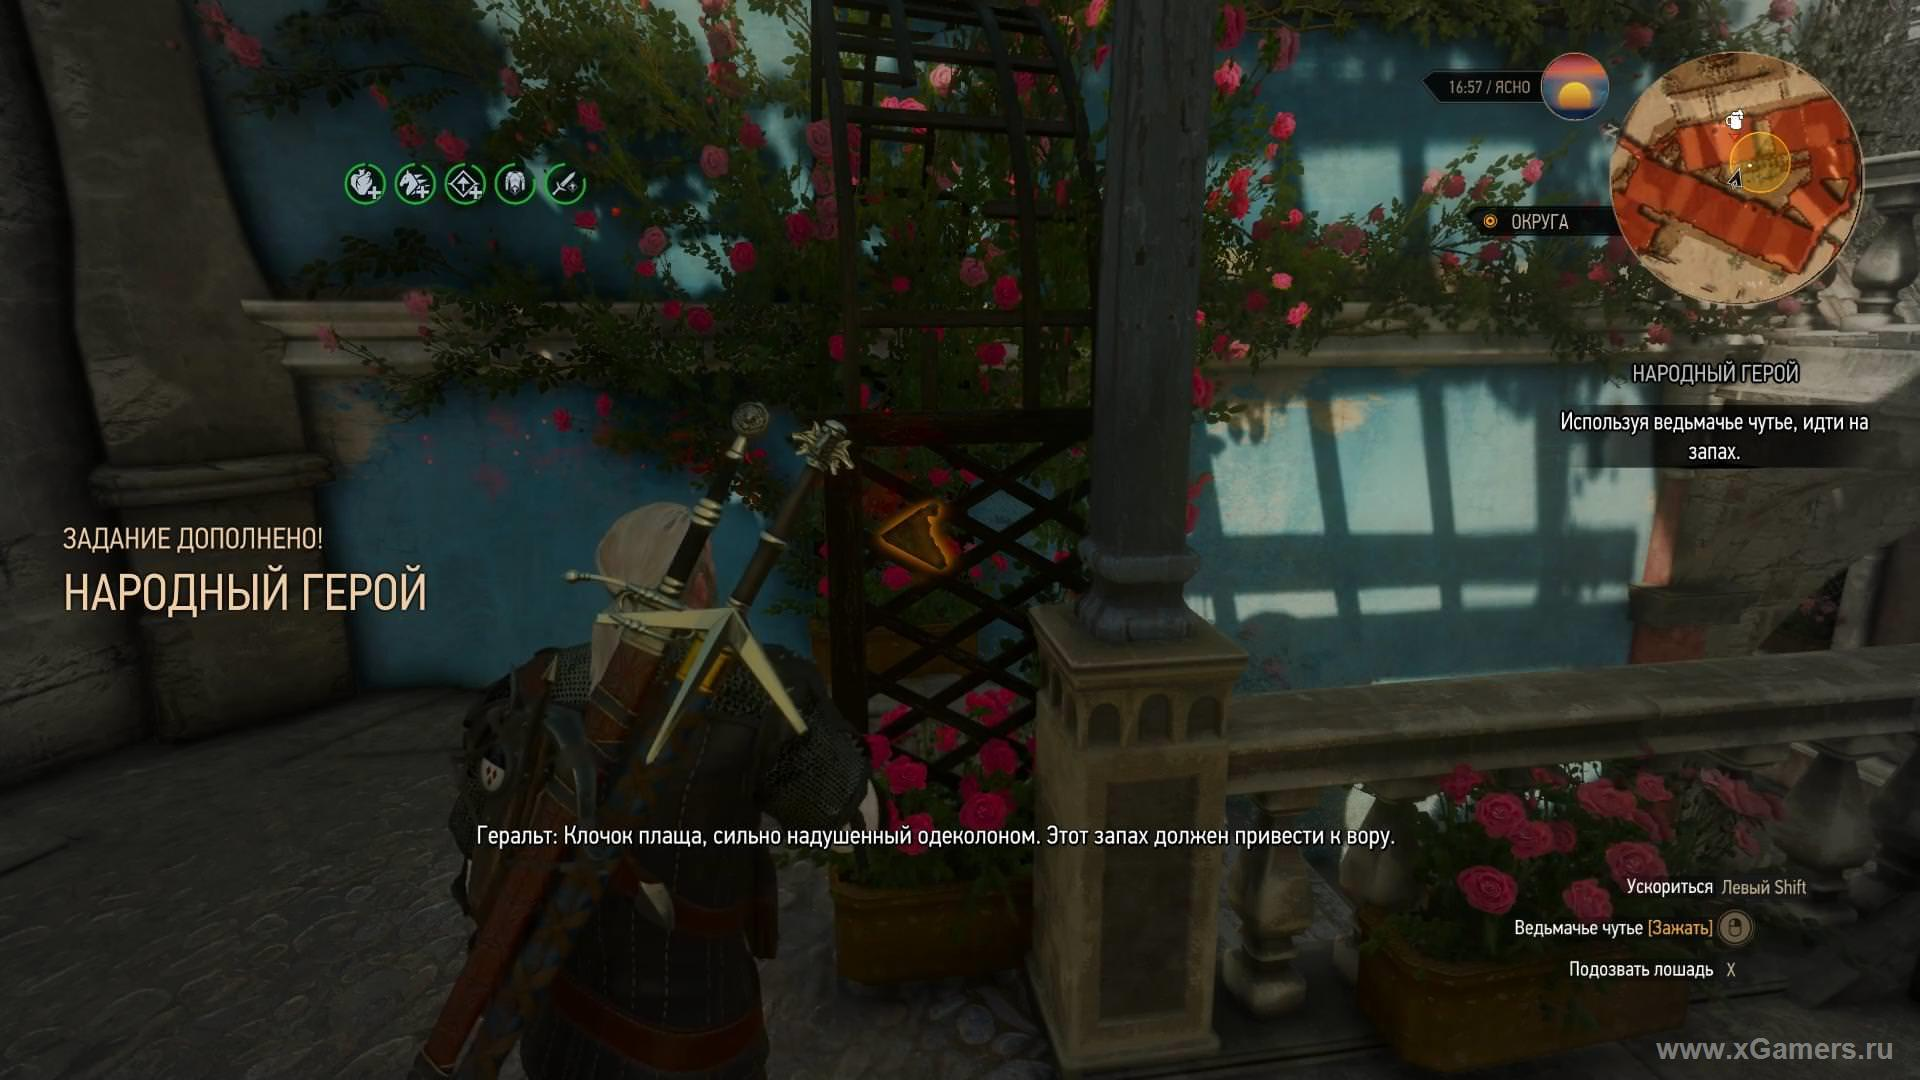 Witcher 3 the walkthrough of the quest Goodness, Gracious, Great Balls of Granite